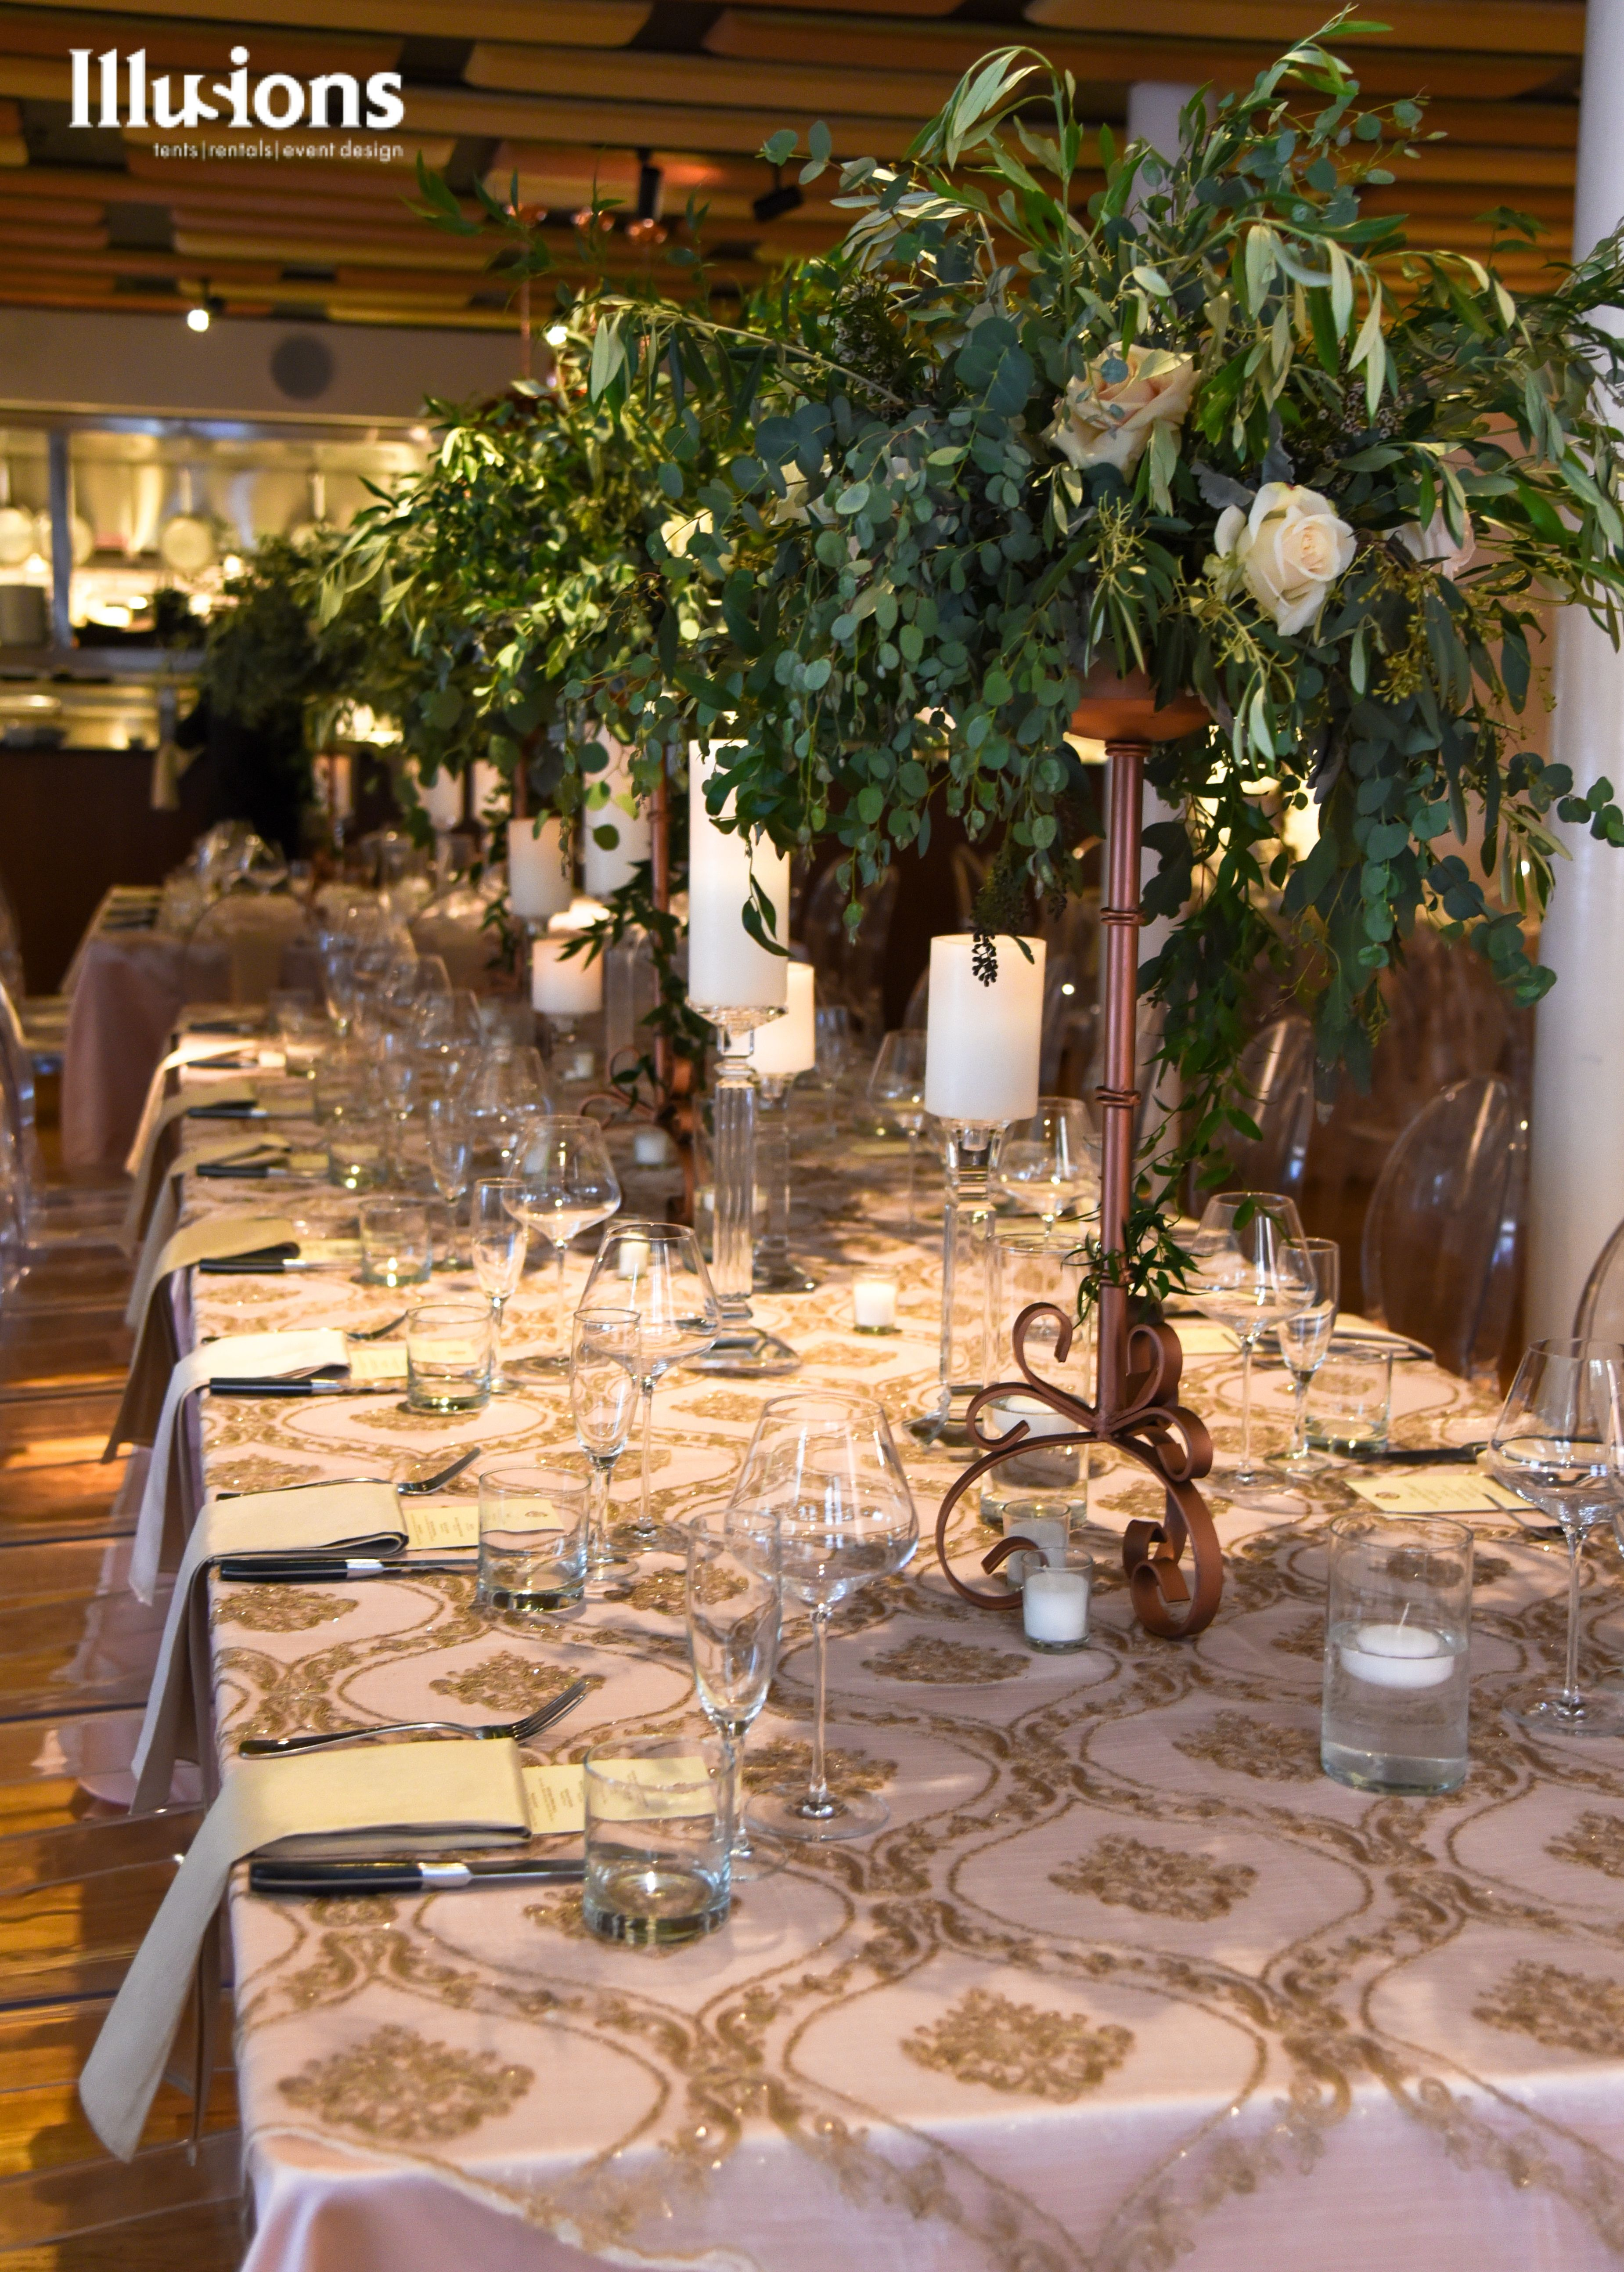 Pin By Illusions Event Rentals On Weddings With Images Wedding Rentals Wedding Display Event Design